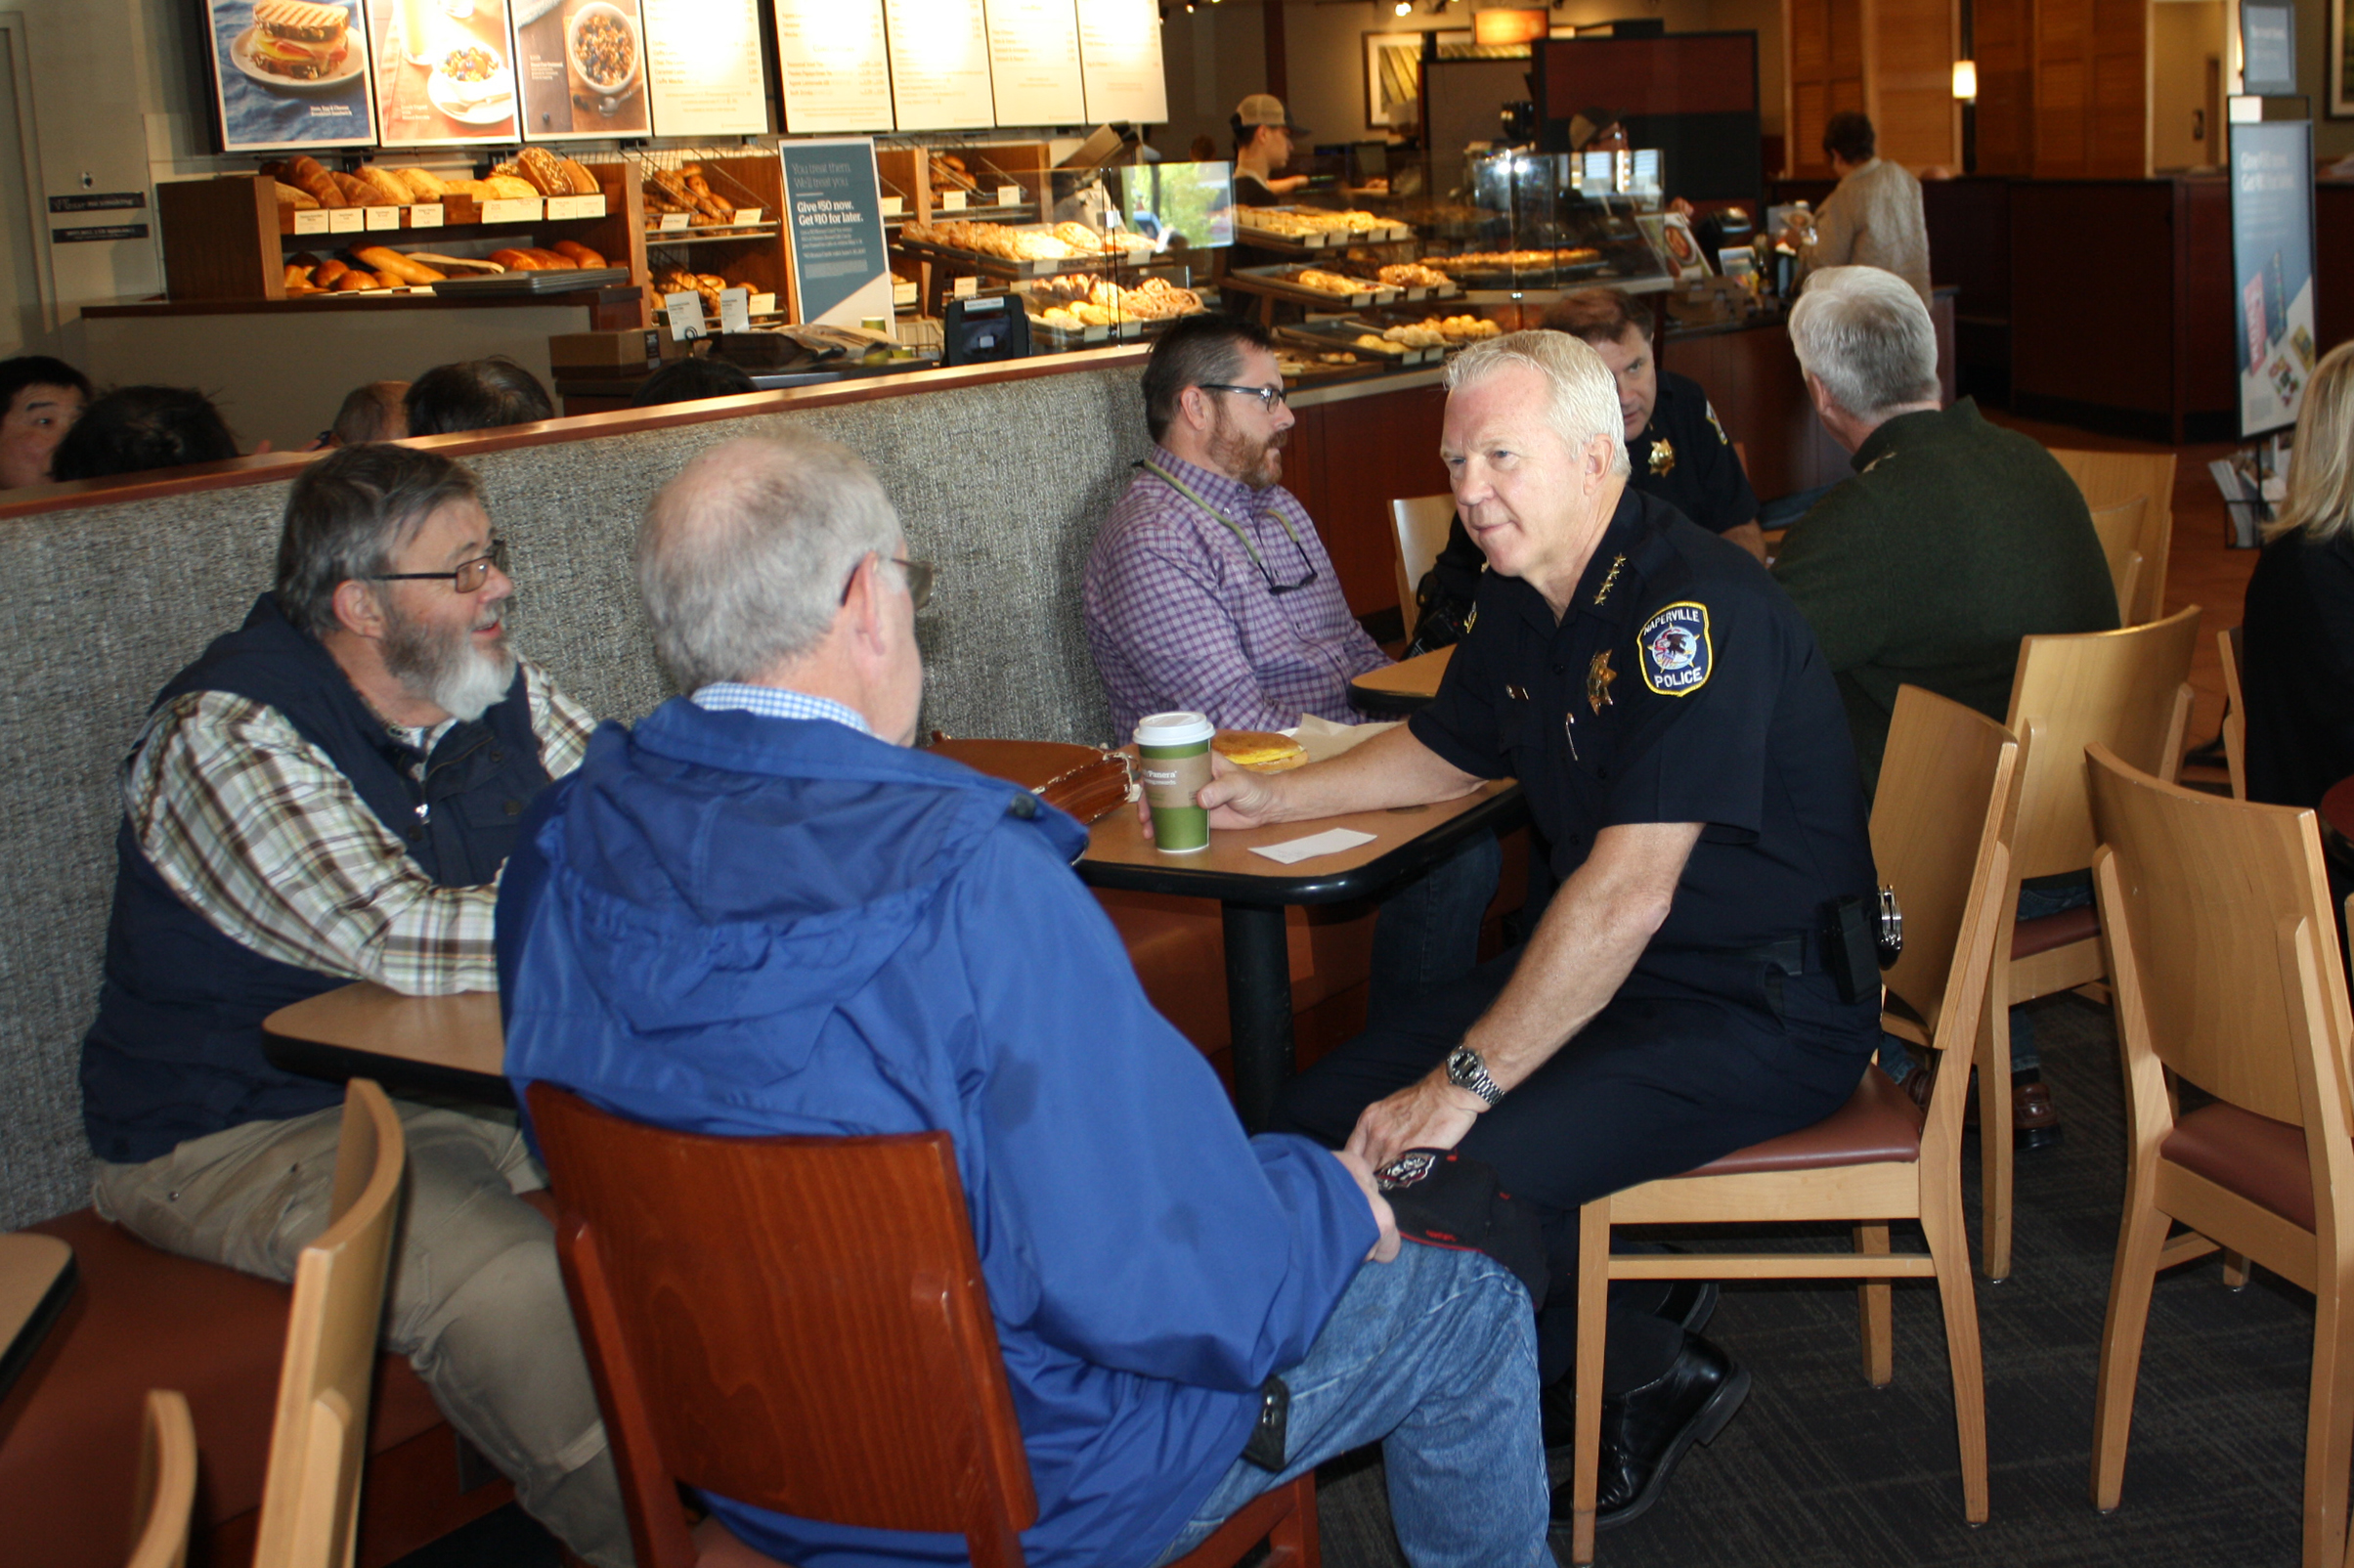 """naperville chat Naperville police chief robert marshall invites the community to chat with him and members of his senior staff over coffee on friday, march 2 this informal meet-and-greet is part of the naperville police department's """"chat with the chief"""" series and will be held from 10am to noon at the starbucks reserve located at 42 w jefferson ave in."""